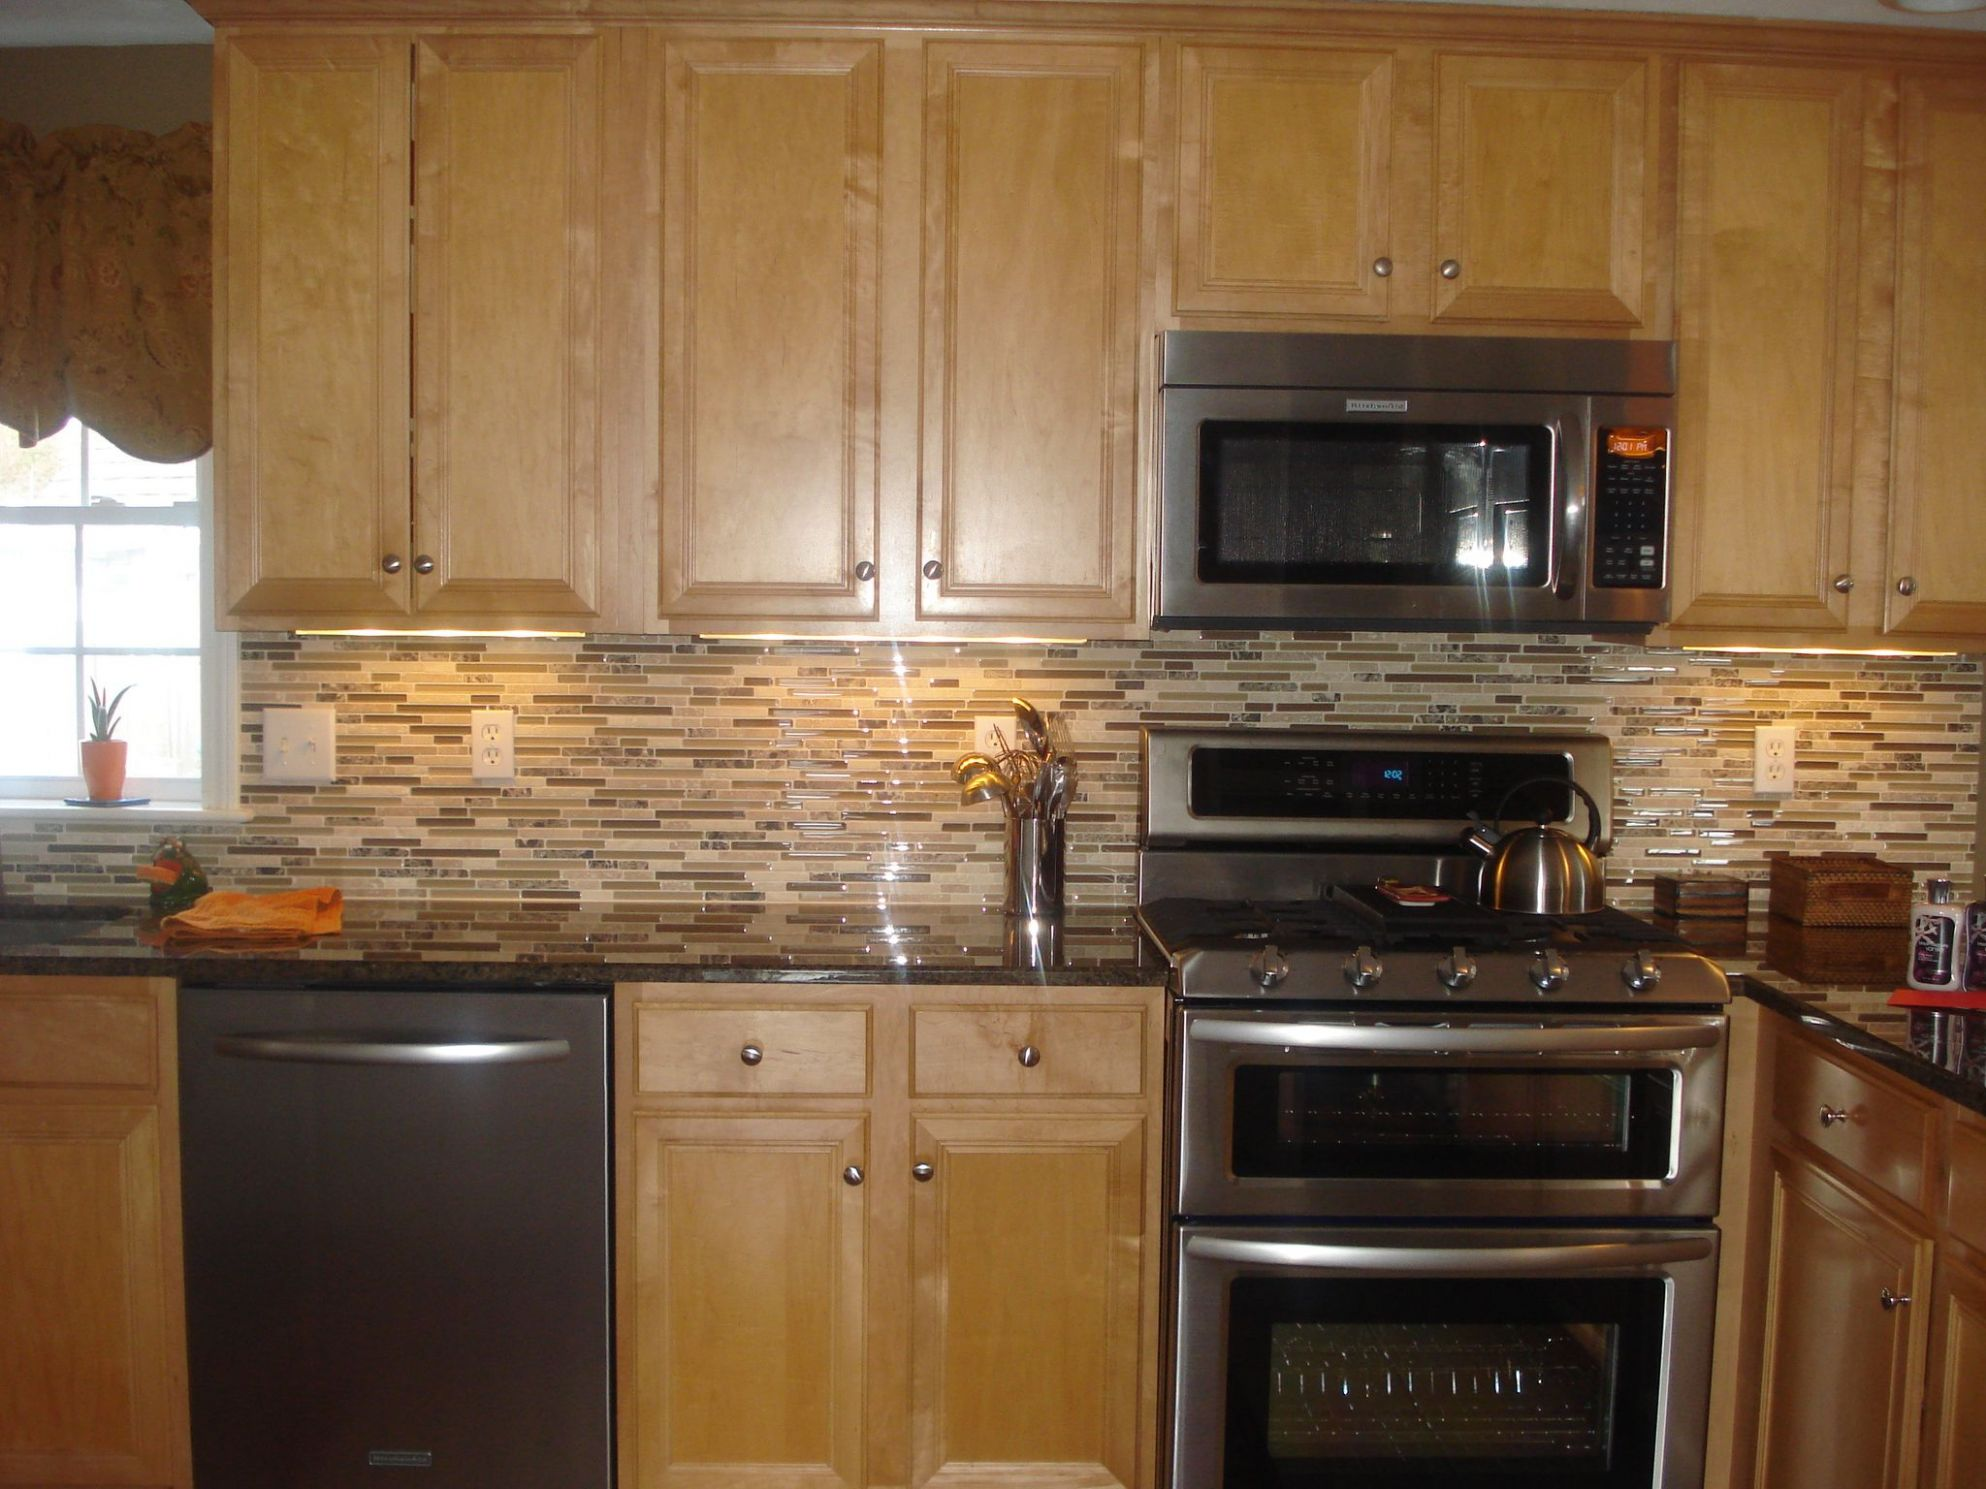 interior-black-granite-countertop-and-beige-mozaic-tile-backsplash ..